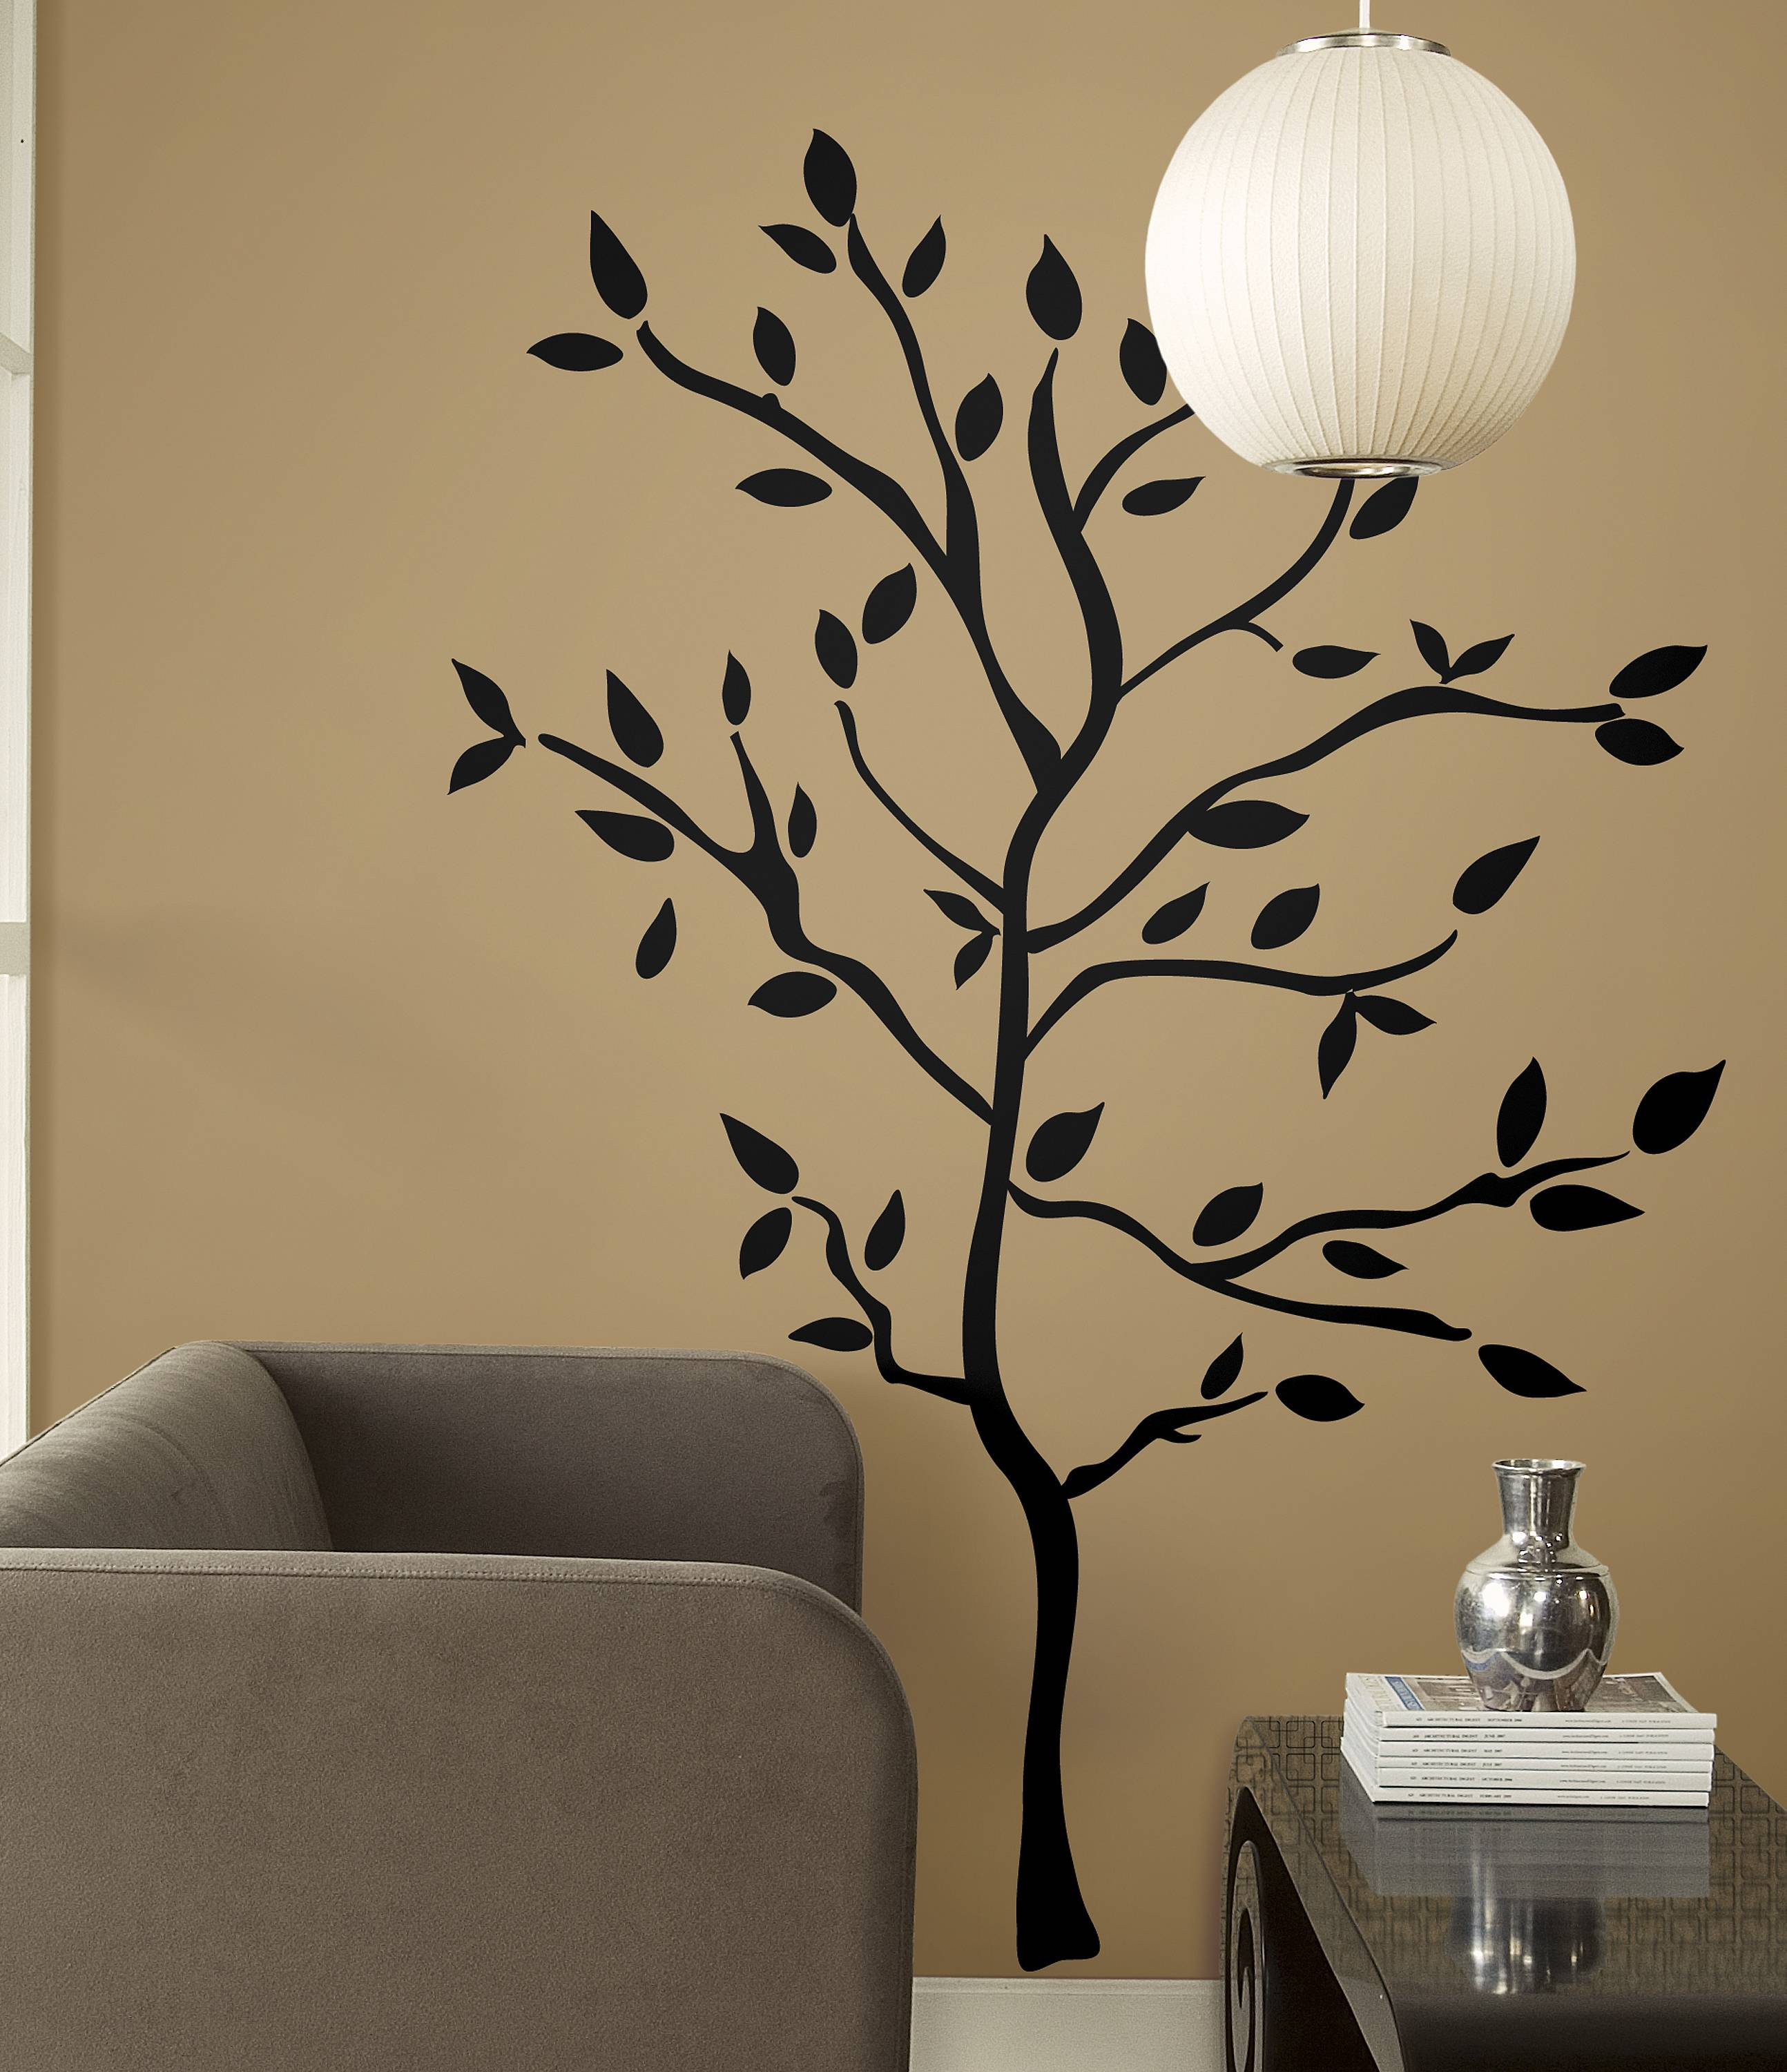 This large, removable decal adds interesting art to a painted wall for little money. Decals can be removed at the end of a semester when its time to move.